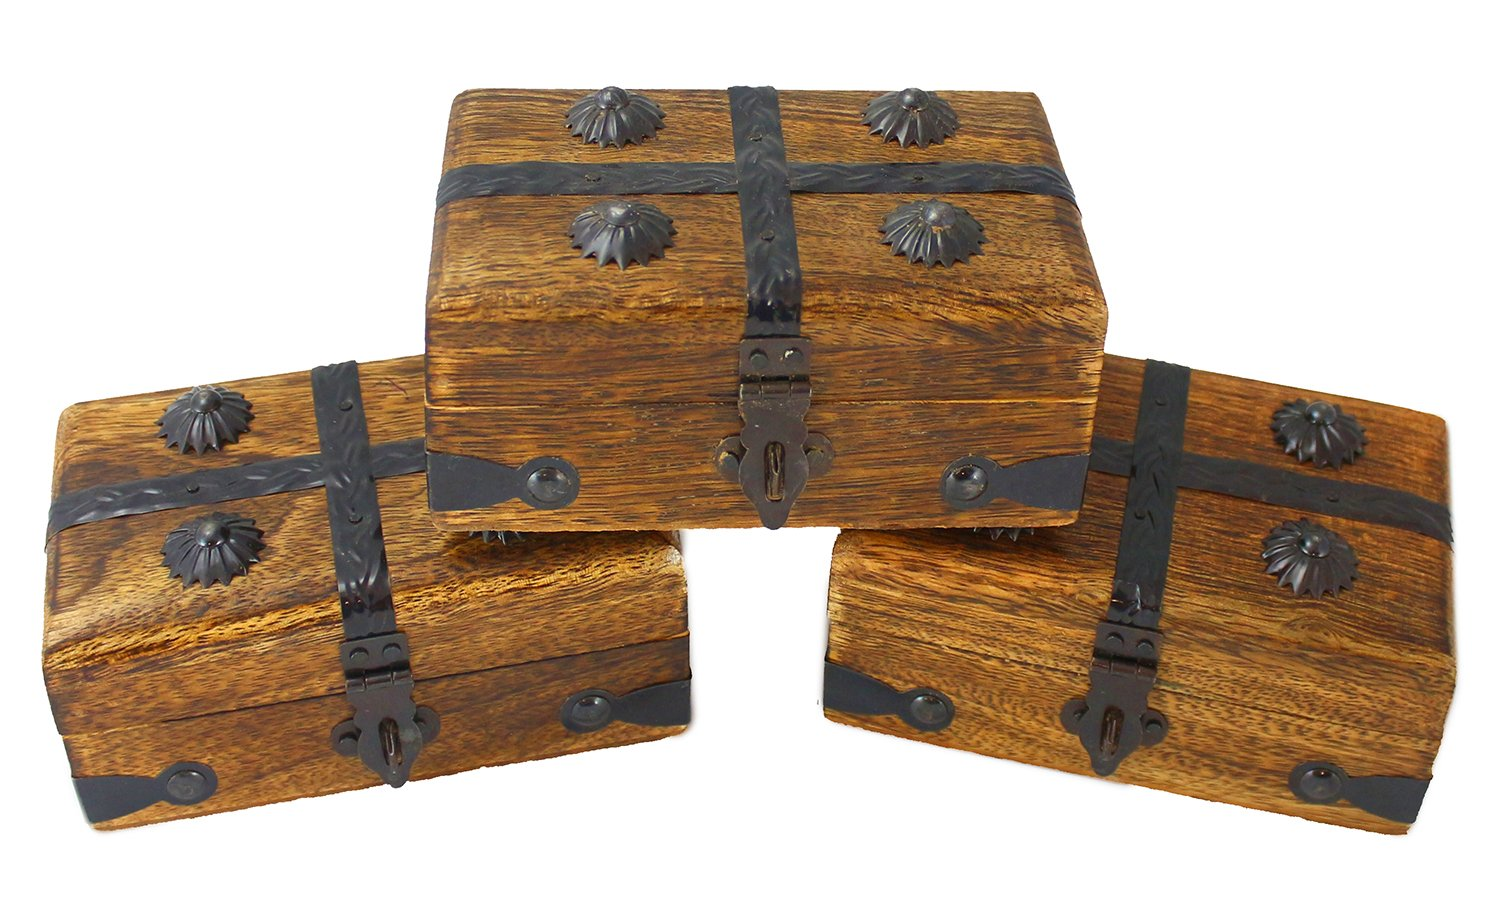 "Well Pack Box 3 Pack Mini Wooden Pirate Treasure Chests 4"" x 3"" x 2.5"" Authentic Style With Hasp Latch For Parties, Costumes, And Kids"